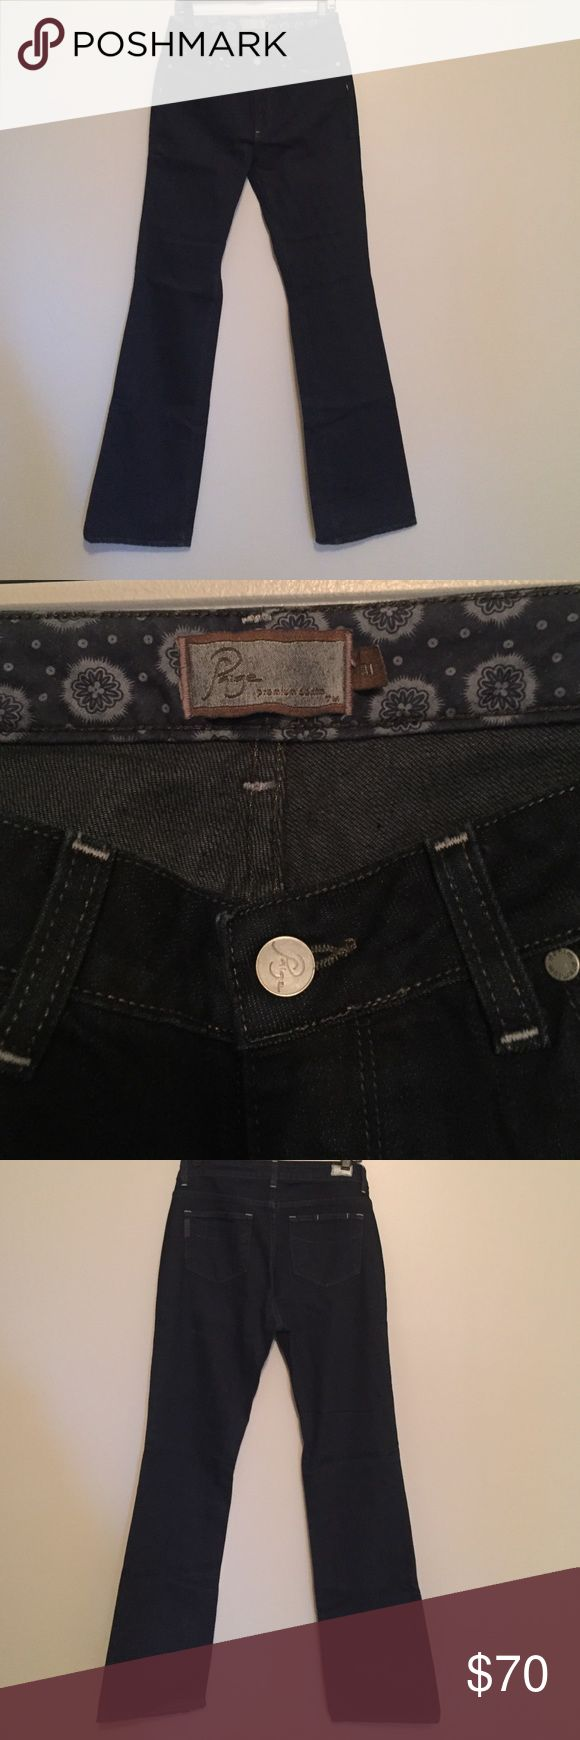 Paige Dark Denim Jeans New with tags. Unworn Paige Premium Denim Jeans. Dark Blue. Classic fit for any outfit! Paige Jeans Jeans Boot Cut